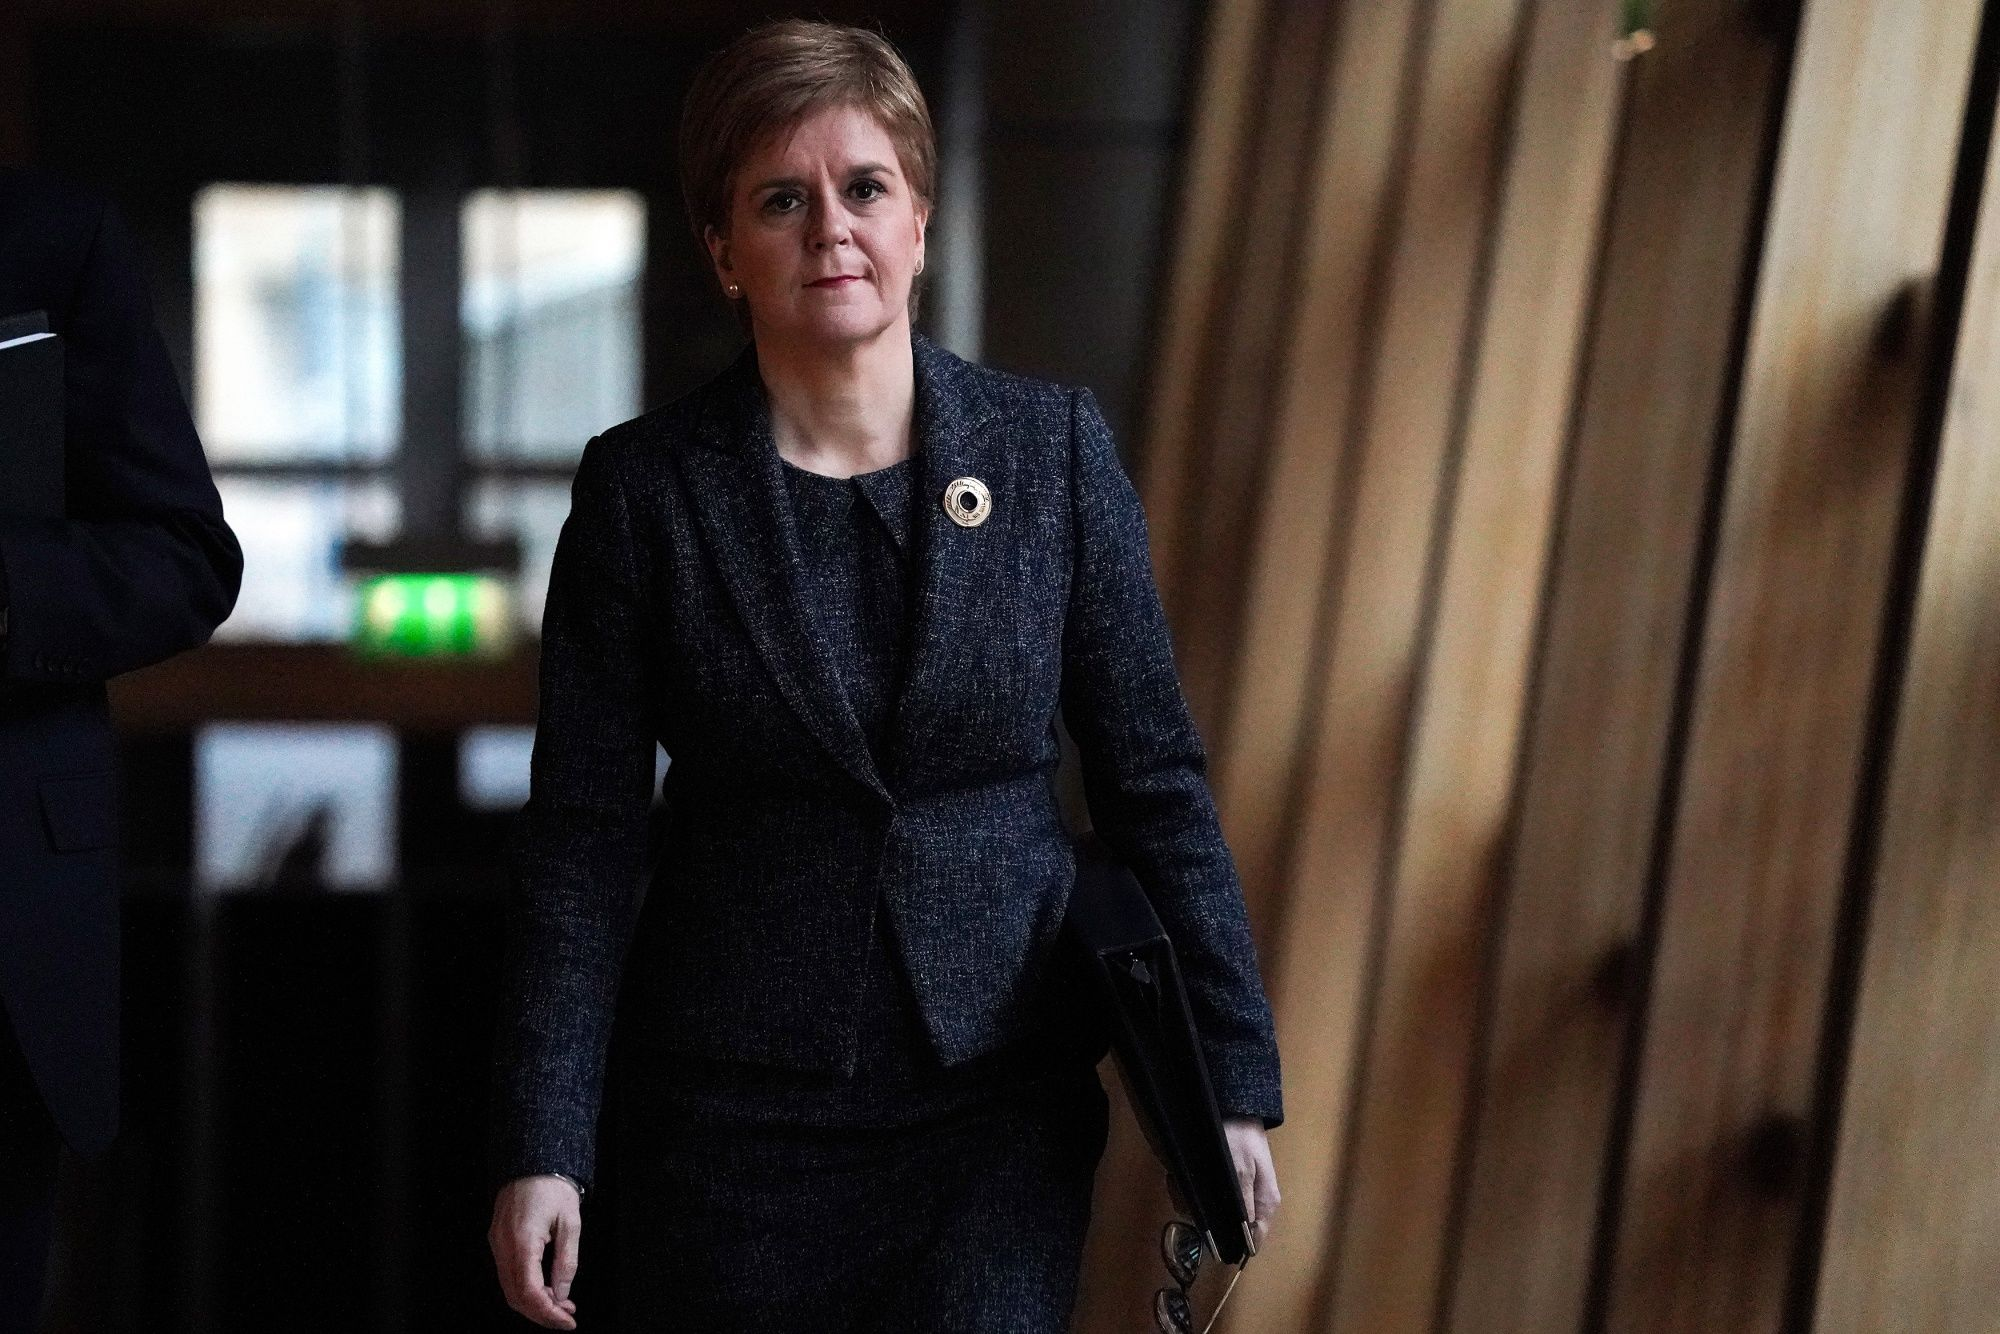 U.K. Standoff Over Scottish Independence Rumbles On With Brexit